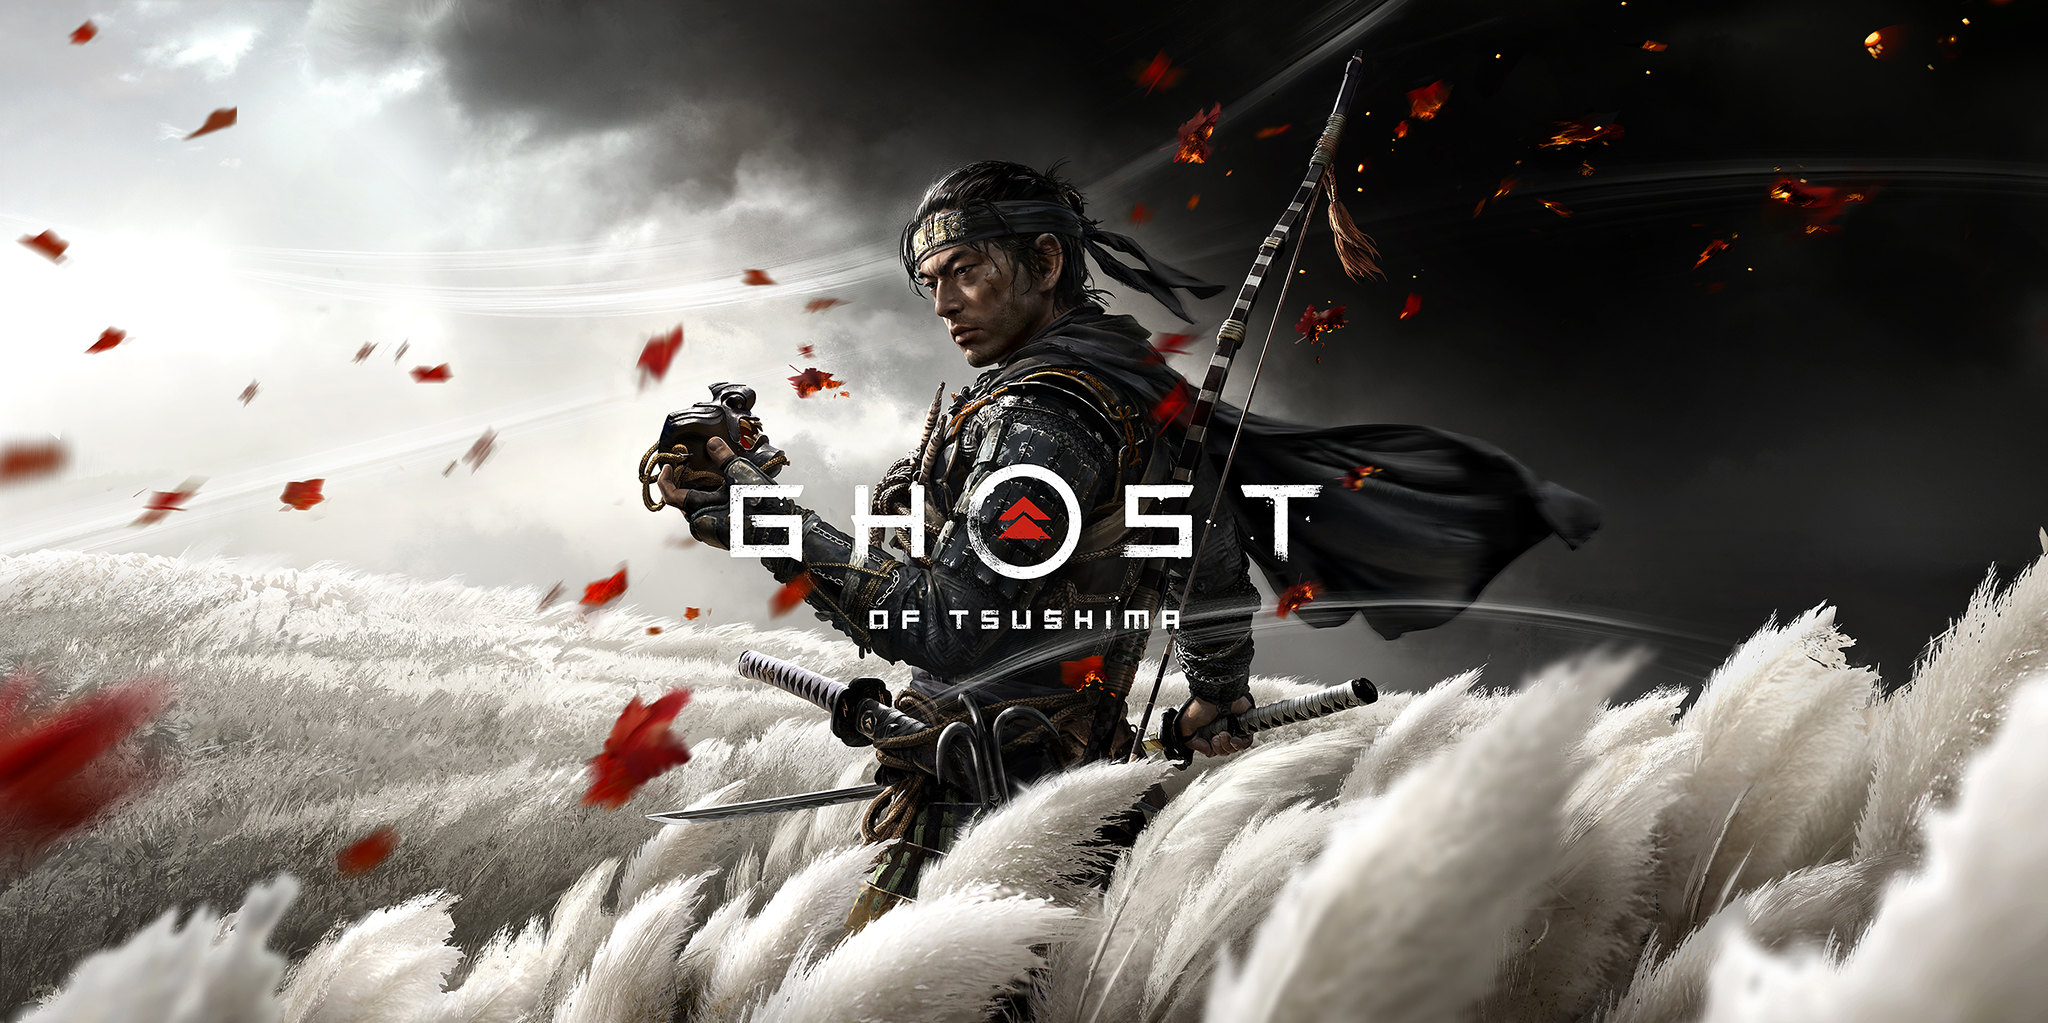 Ghost of Tsushima is now PS4's fastest selling first-party original IP debut with more than 2.4 million units sold through globally in its first 3 days of sales.  Congratulations @SuckerPunchProd, and thank you to fans around the world for taking part in Jin's journey. https://t.co/6aE4U7YZJH